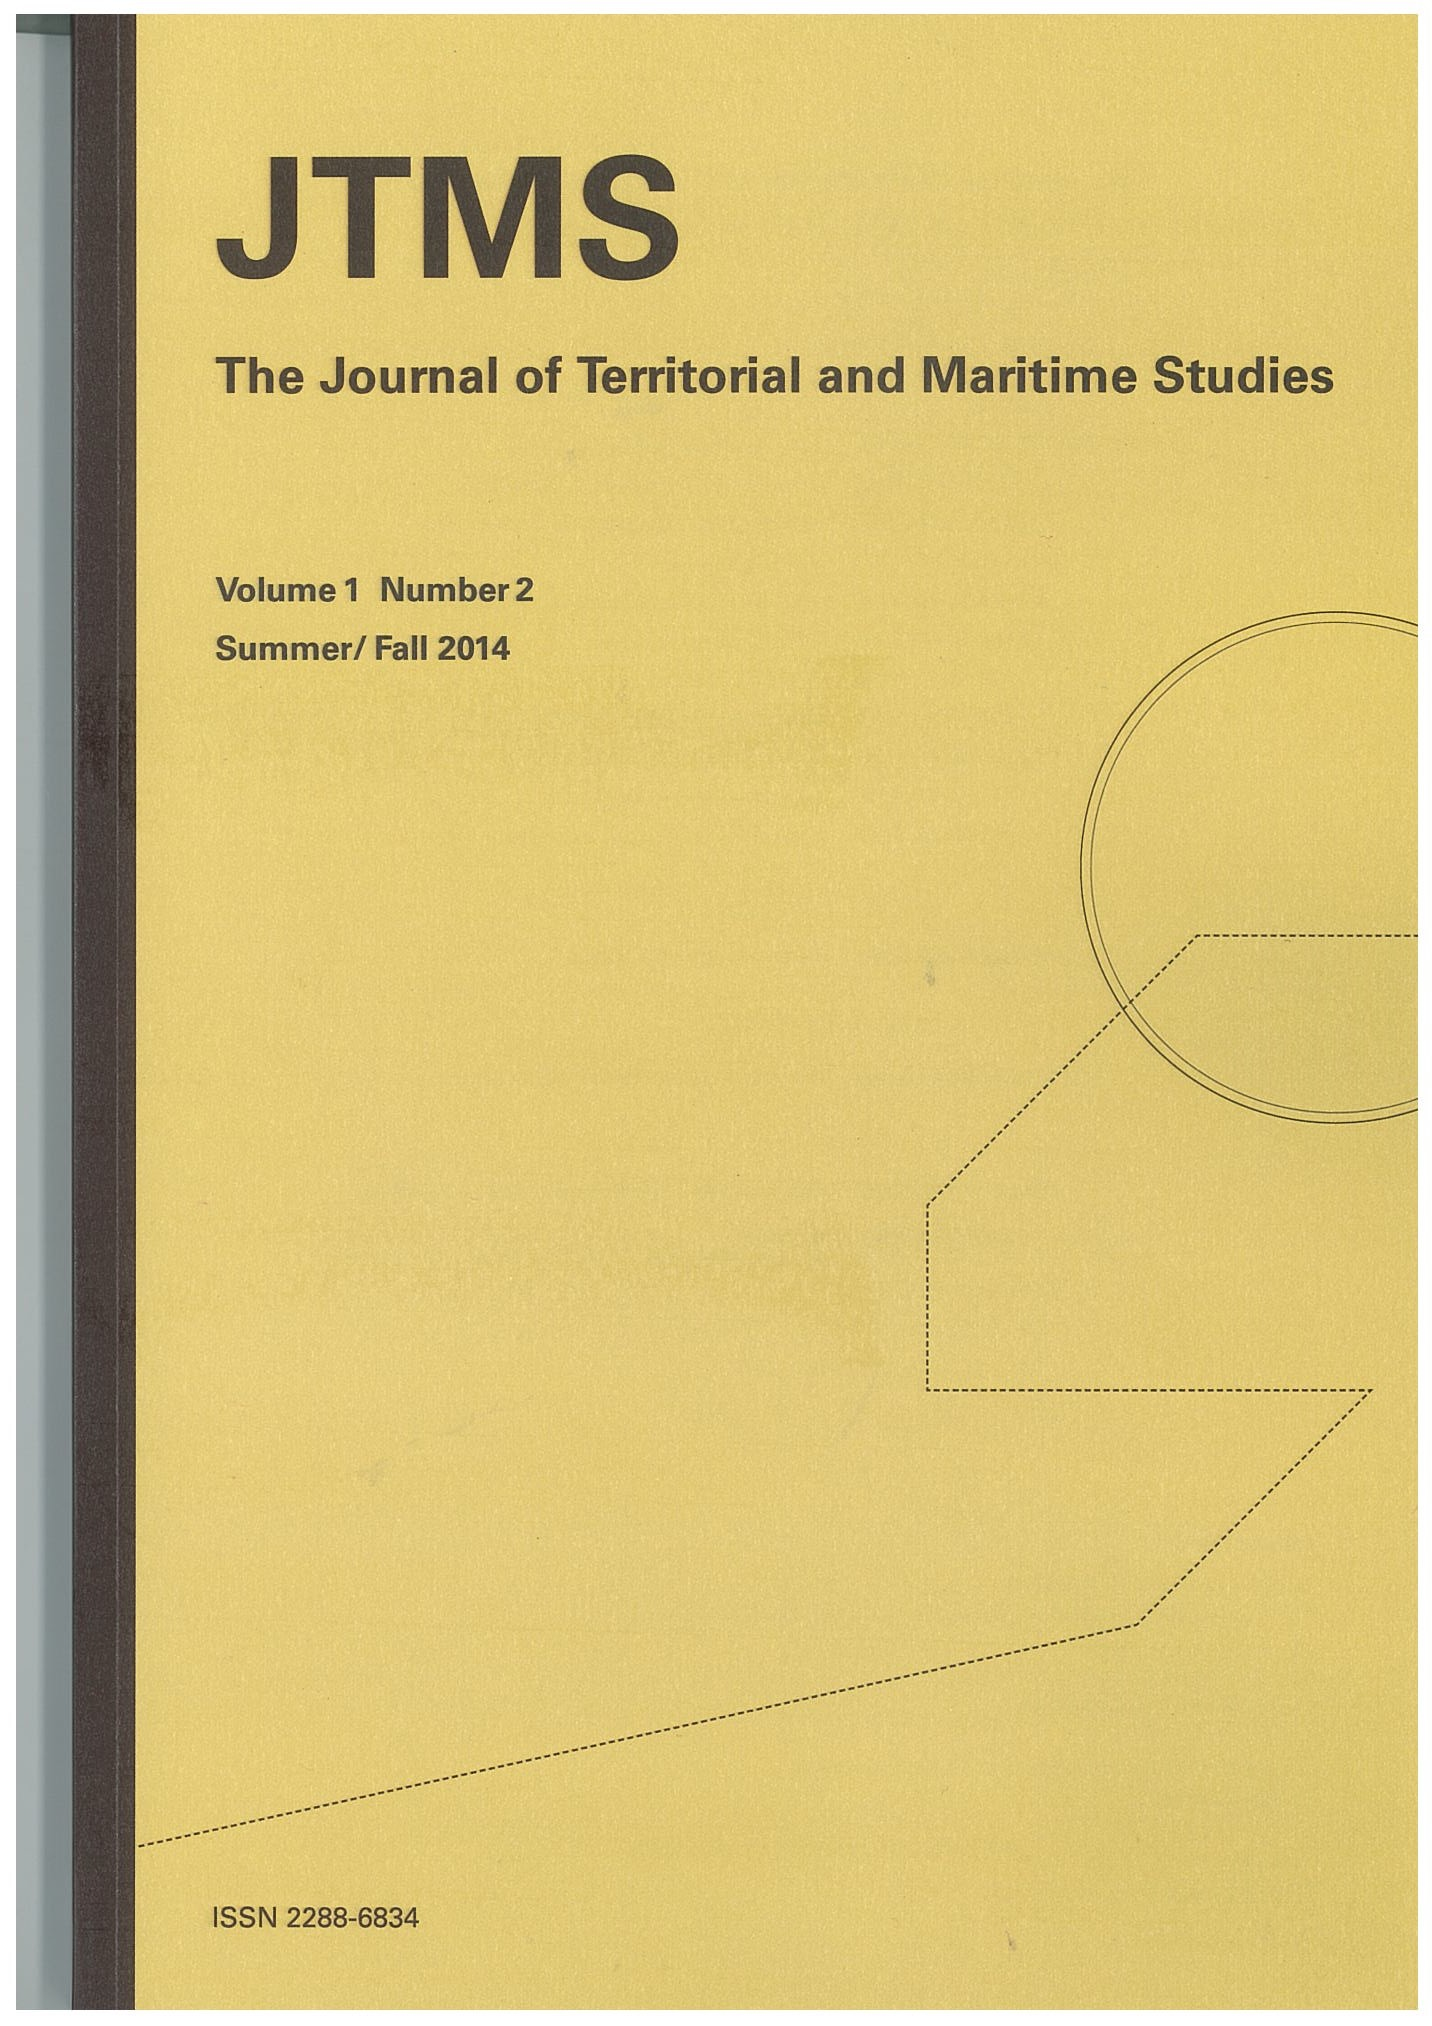 The Journal of Territorial and Maritime Studies Vol. 1 No. 2